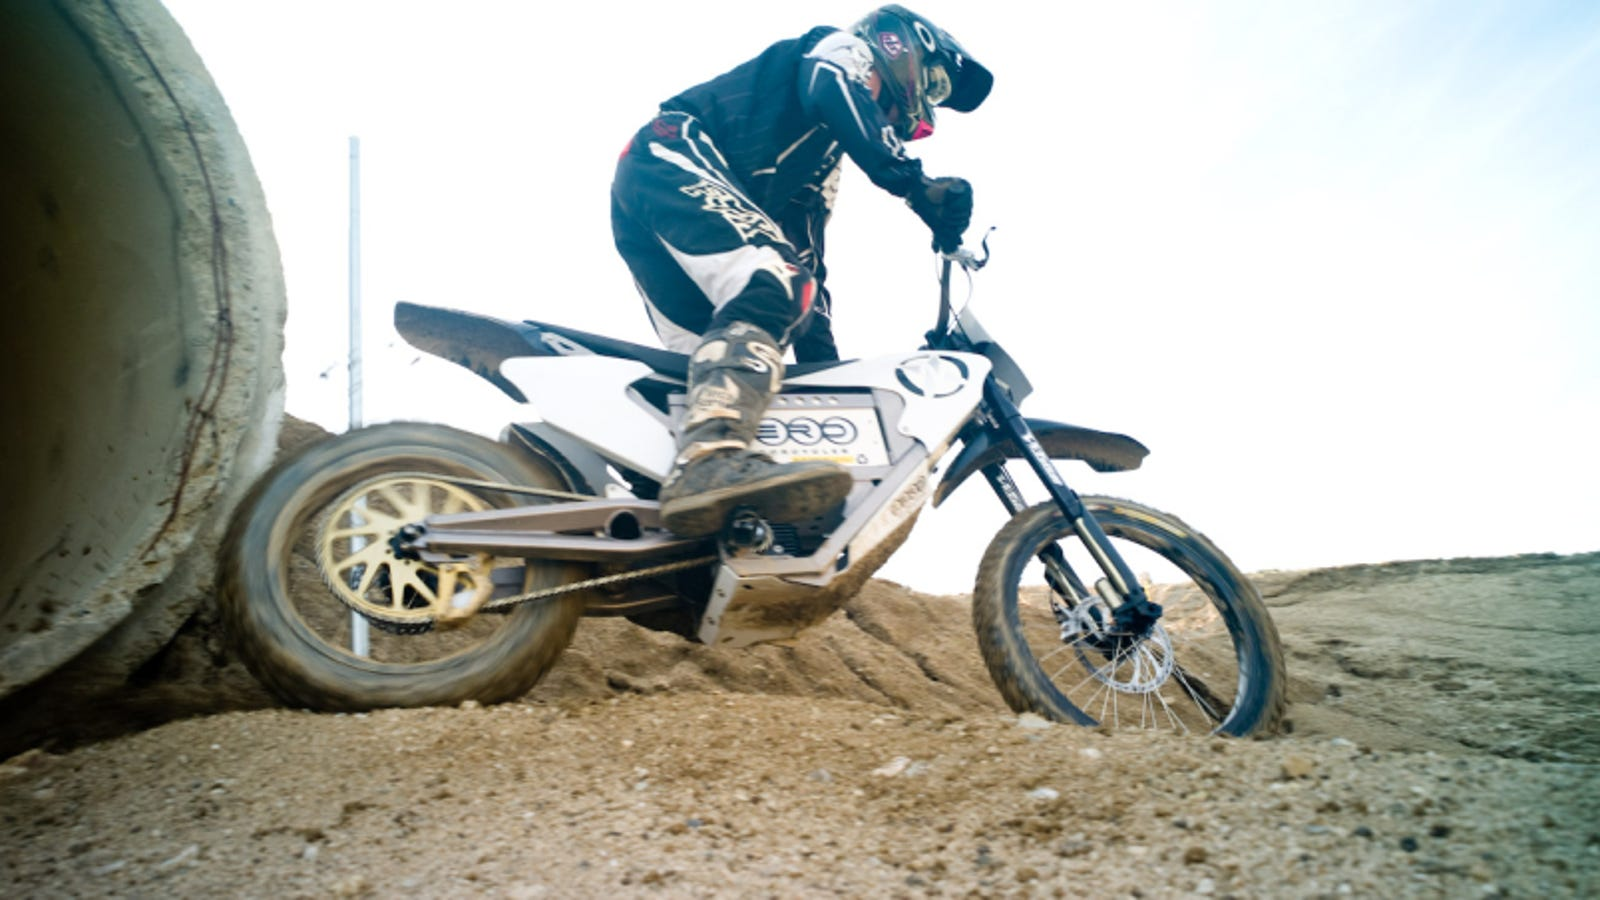 2009 Zero X First Ride Fastest Production Electric Dirt